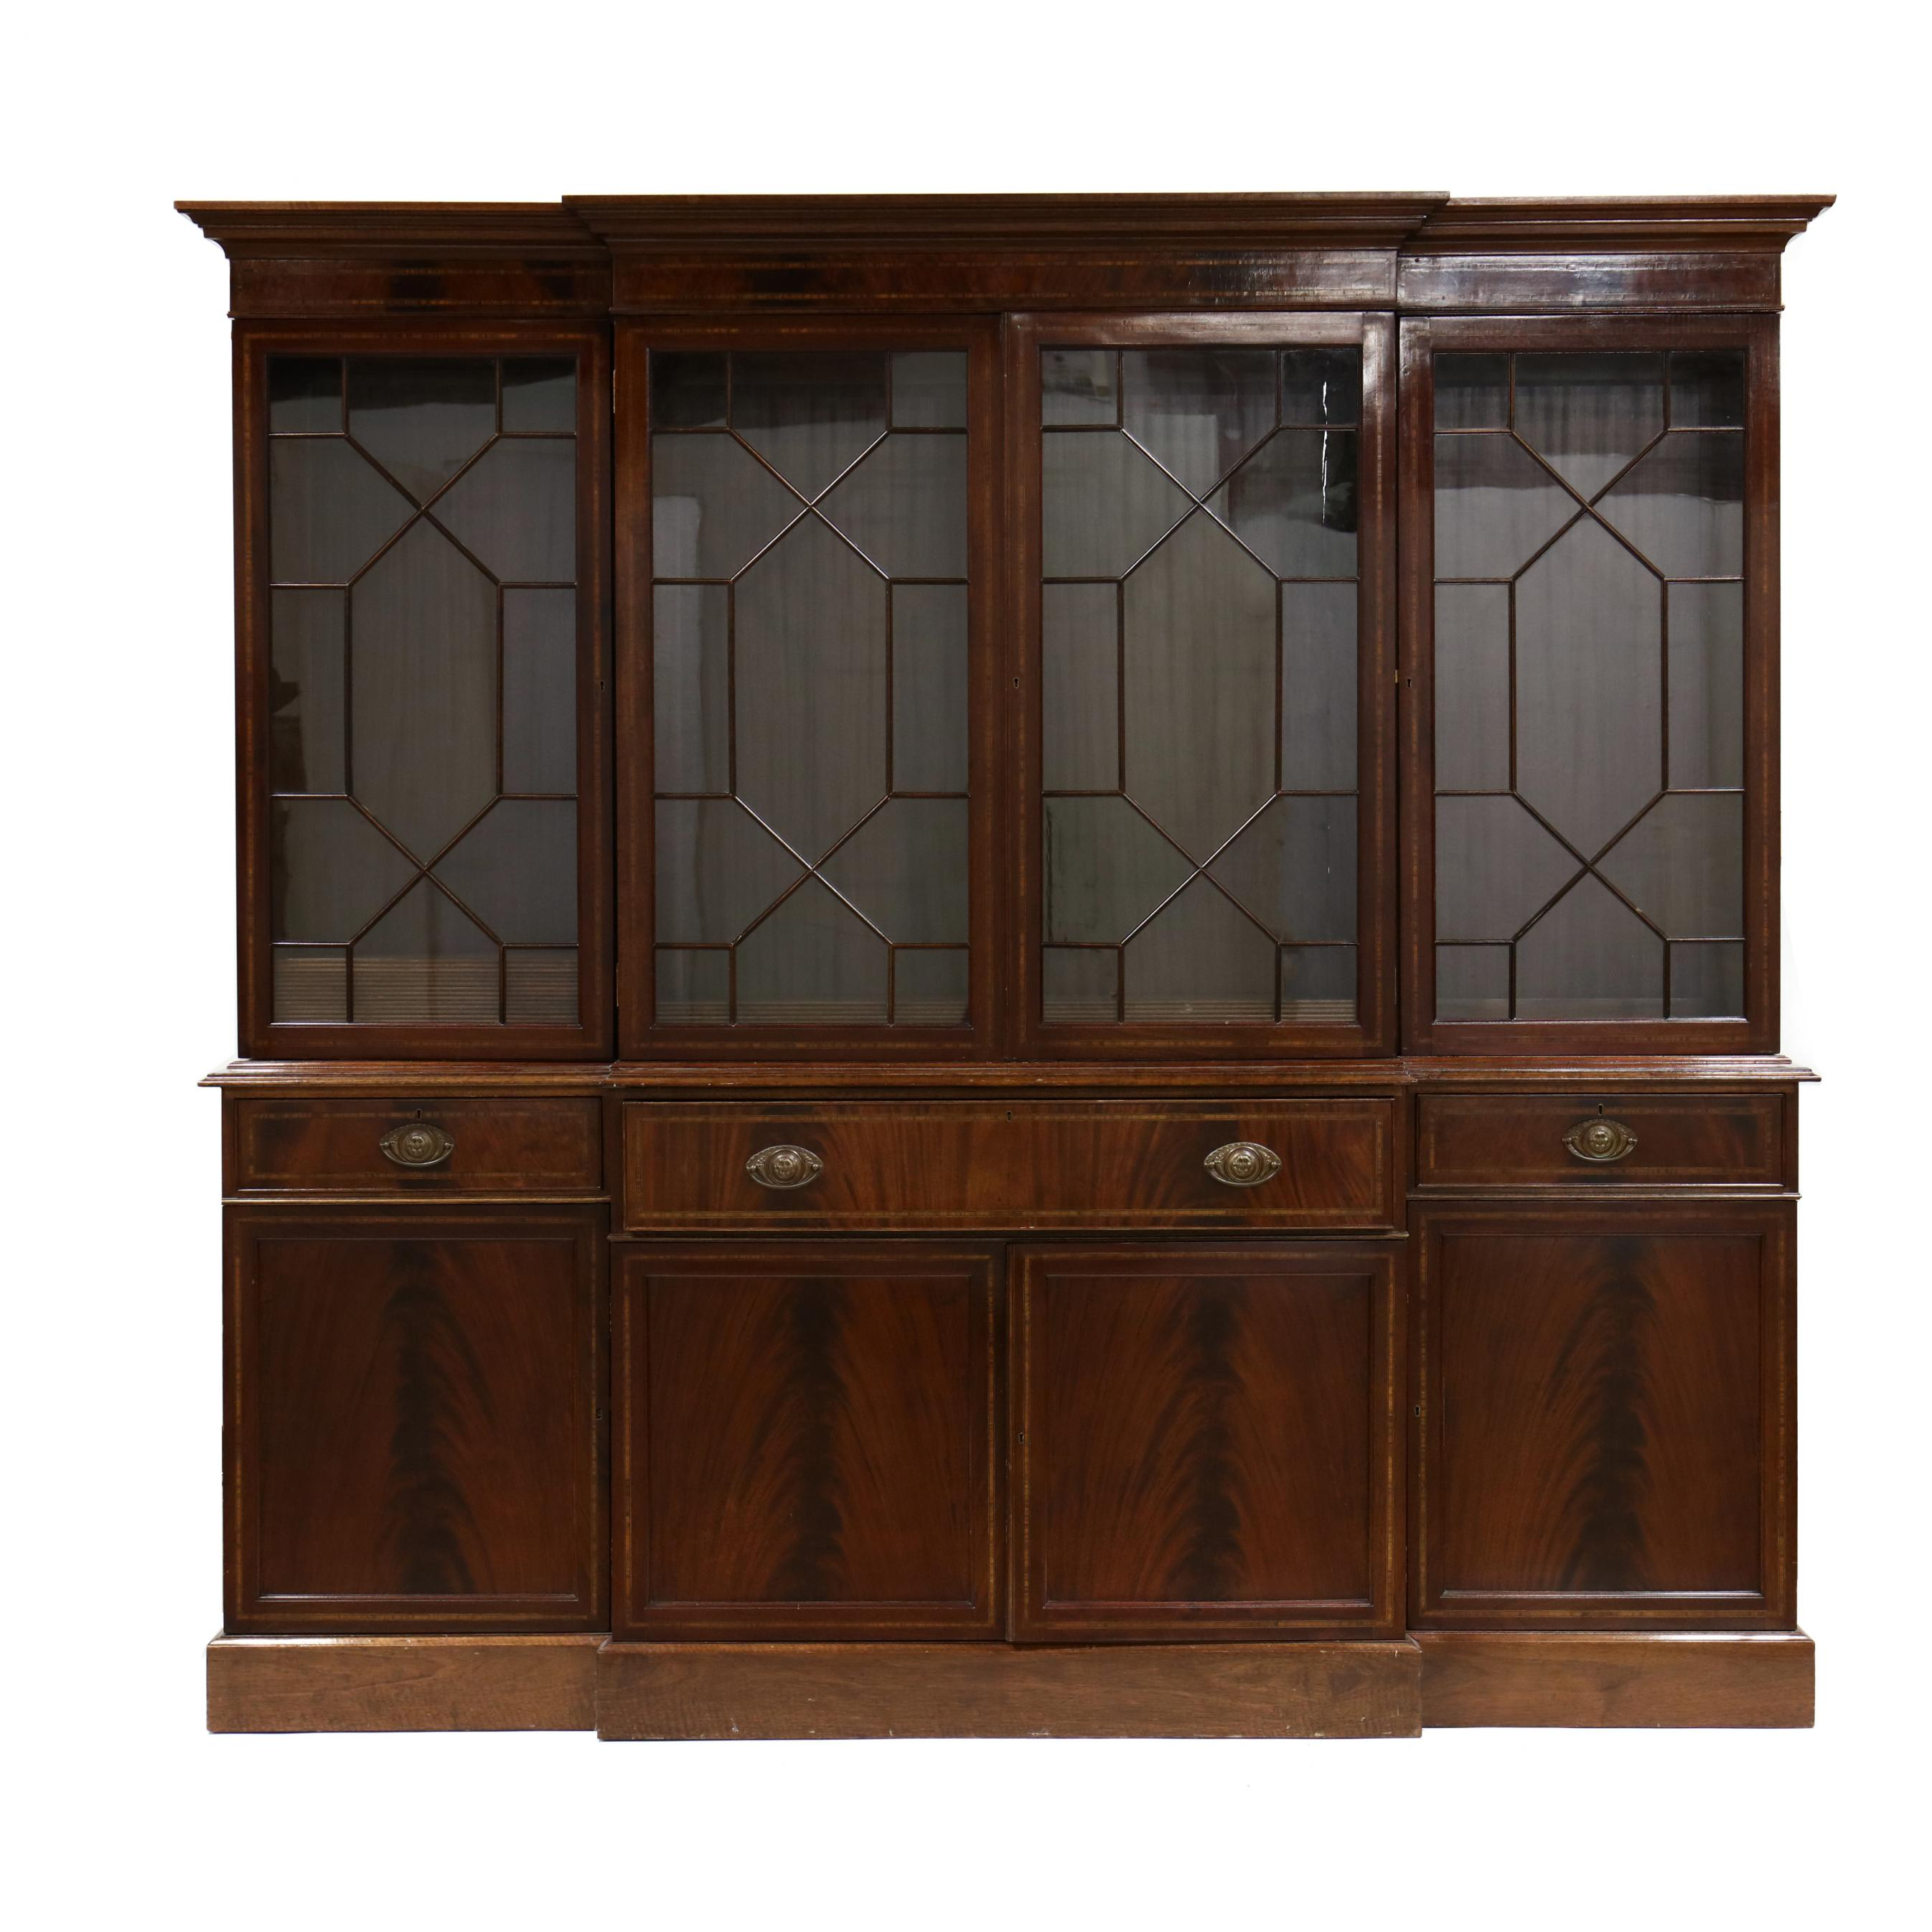 georgian-style-inlaid-mahogany-breakfront